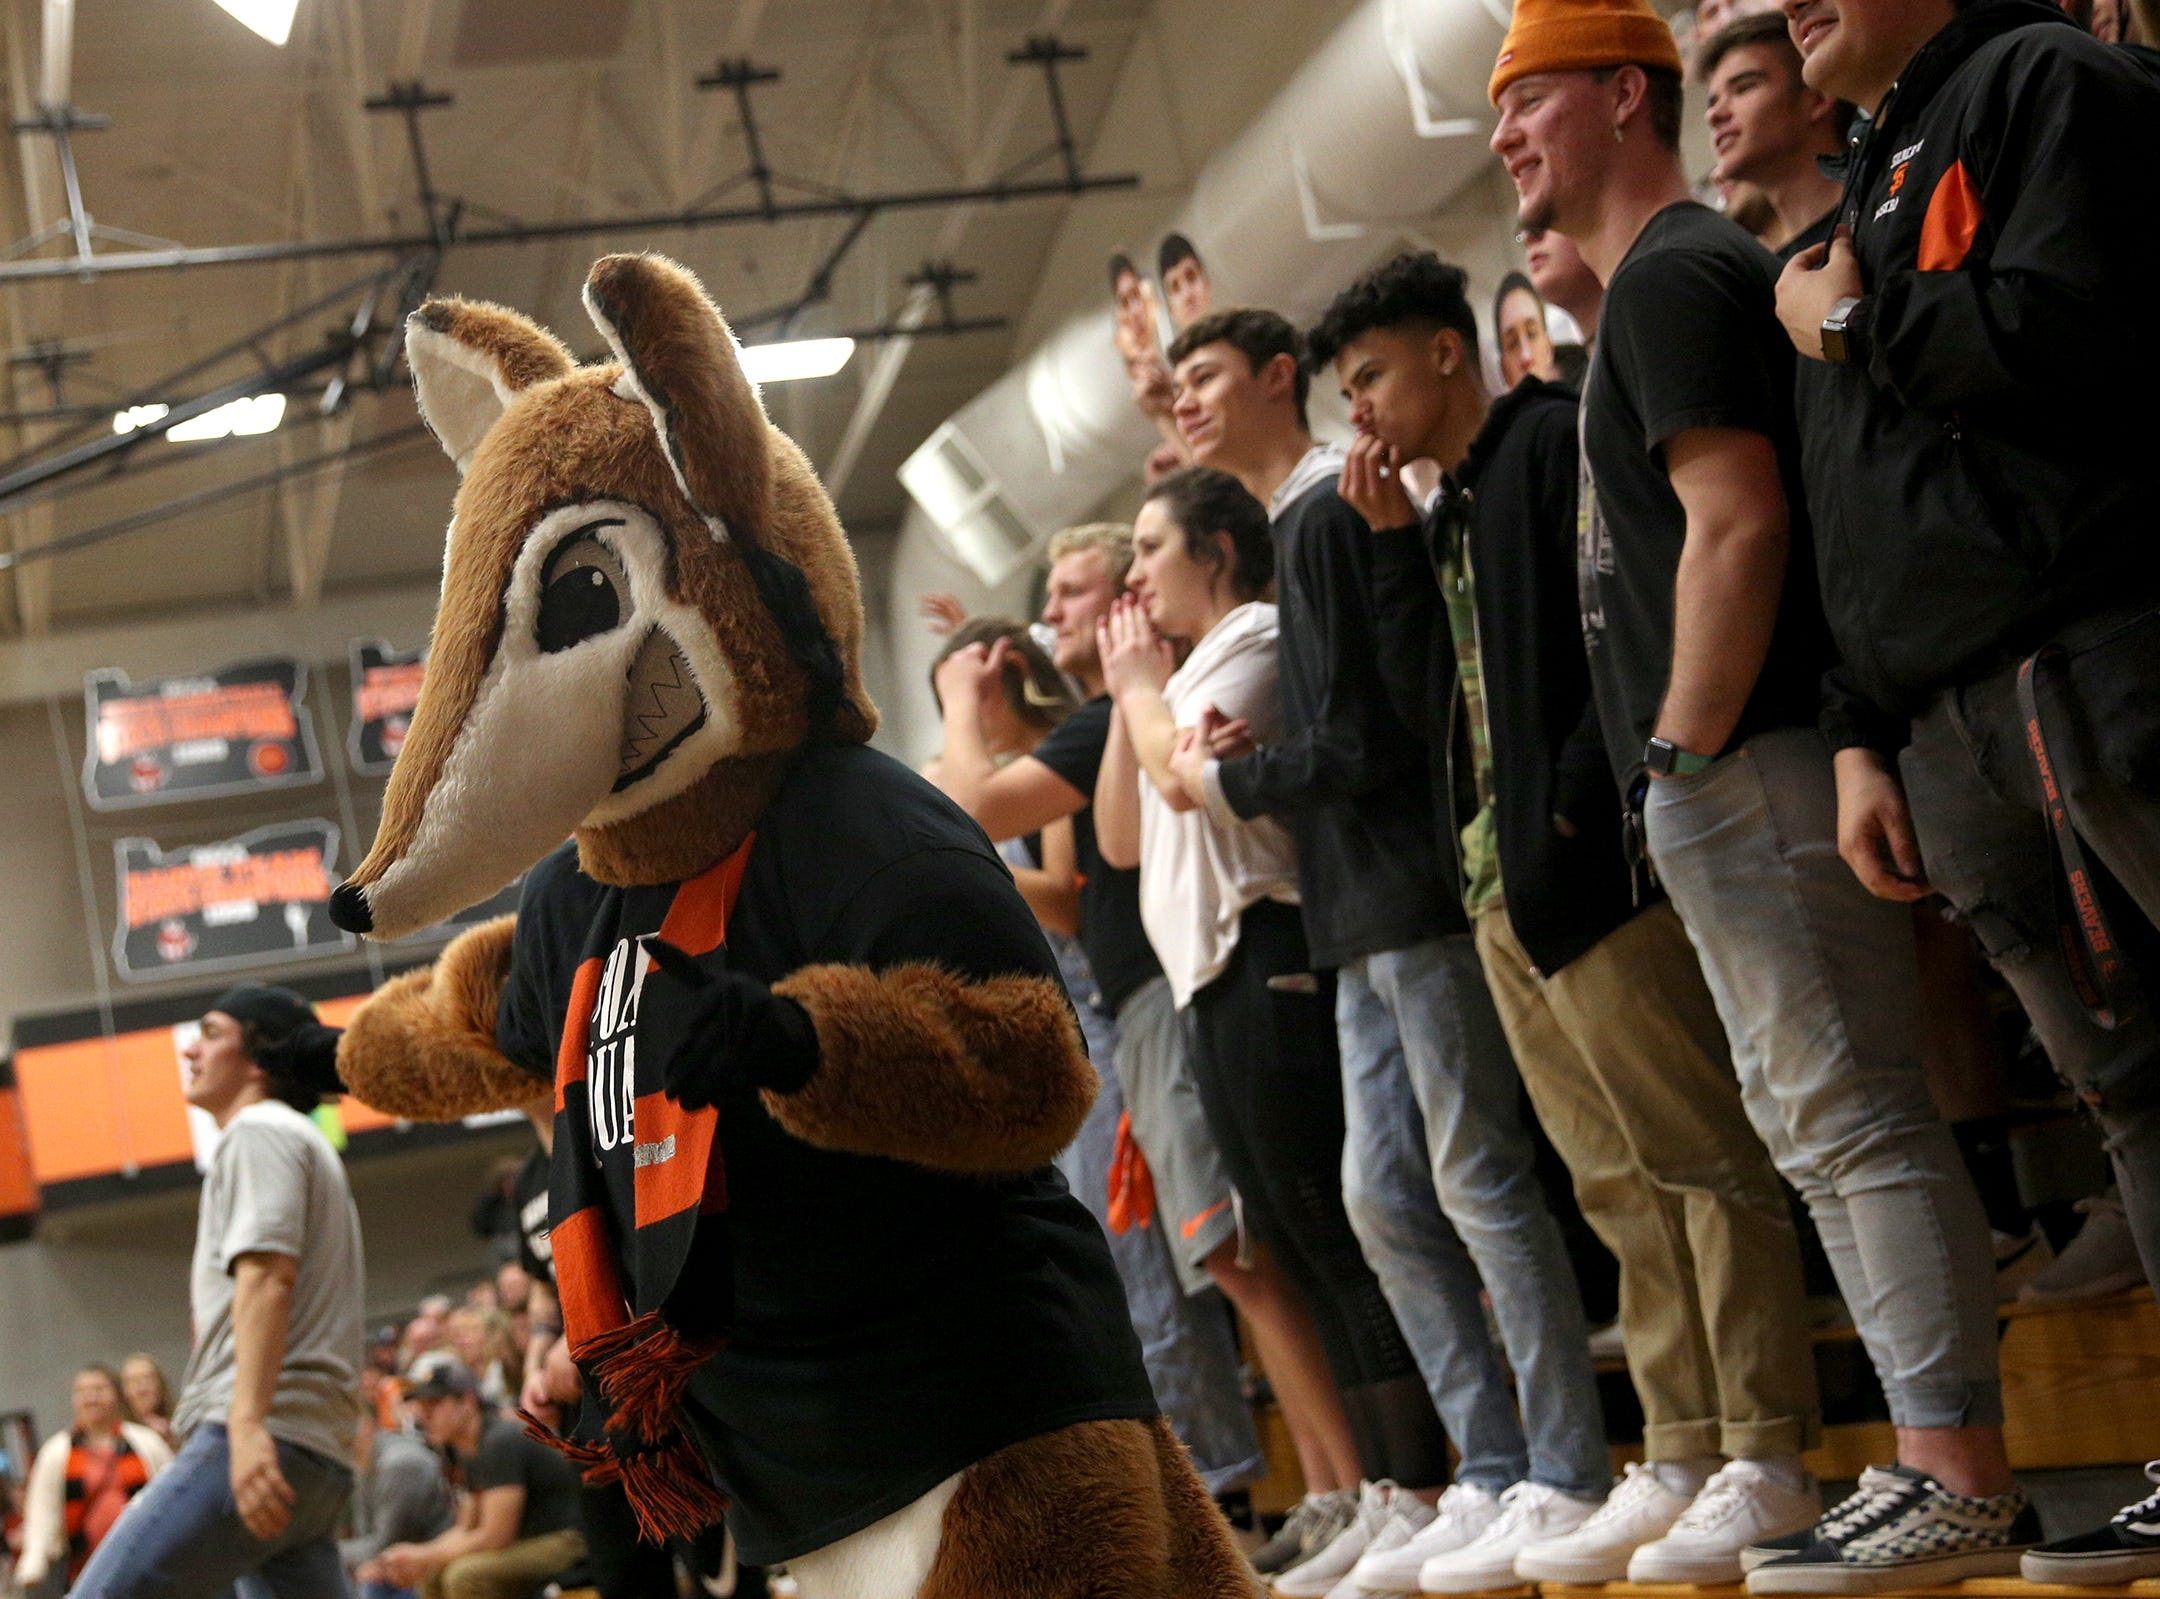 The Silverton Fox cheers on his team during the Silverton vs. Springfield boys basketball OSAA state playoffs game at Silverton High School in Silverton on Saturday, March 2, 2019.